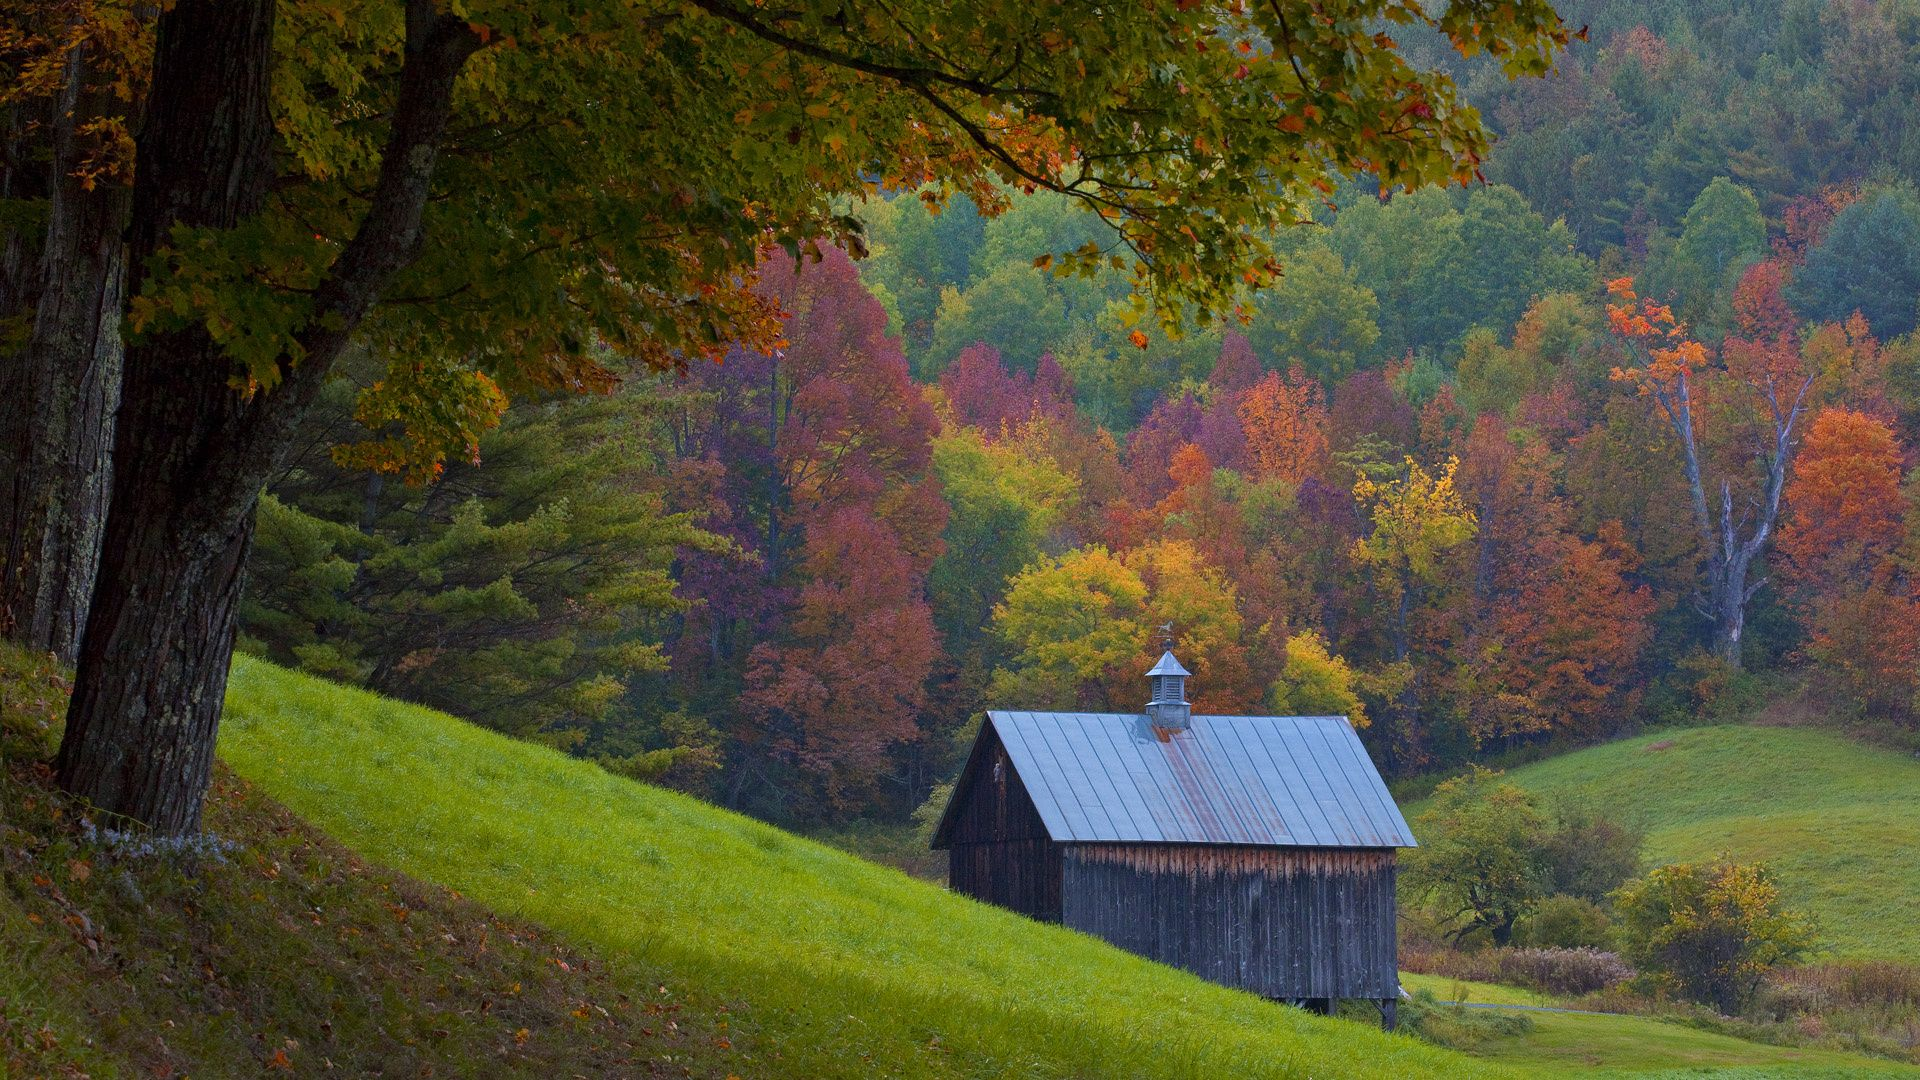 Fall Foliage Wallpaper Screensavers Vermont Autumn Wallpapers Hd Free 34984 The Hd